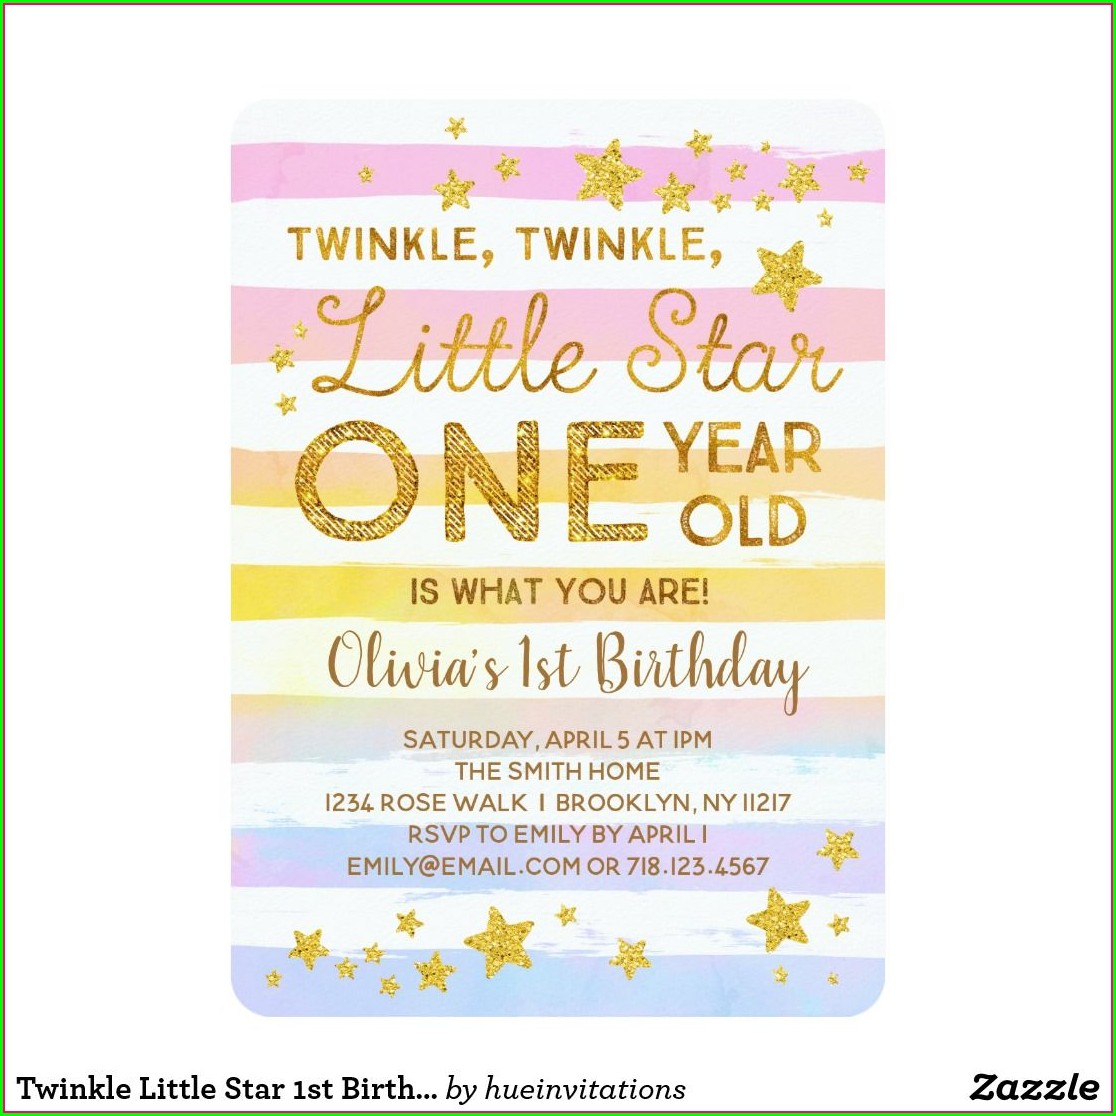 Twinkle Twinkle Little Star 1st Birthday Invitations